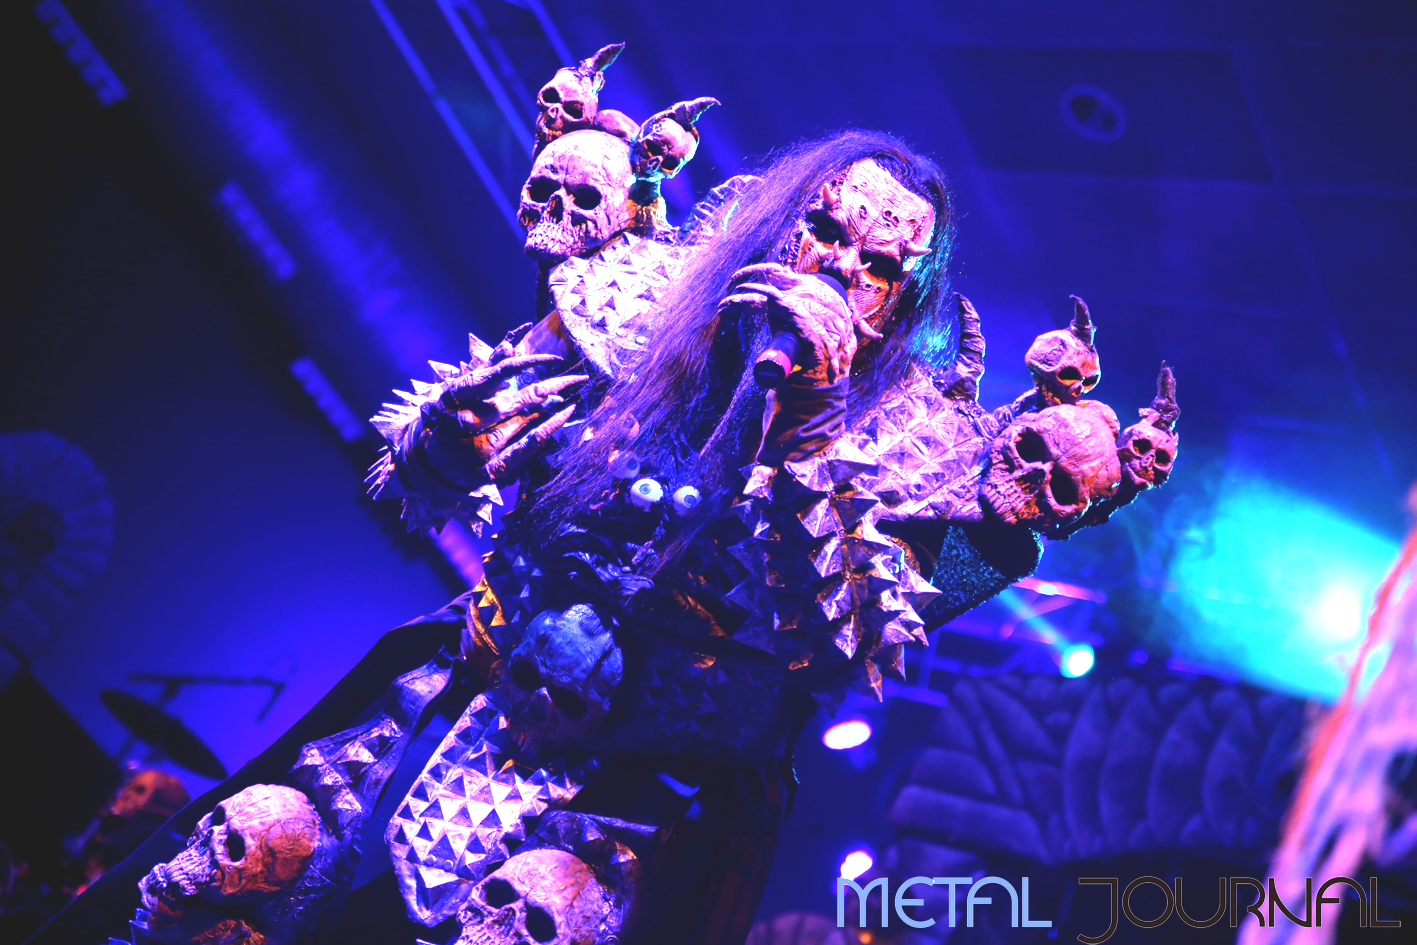 lordi - metal journal 2018 pic 1